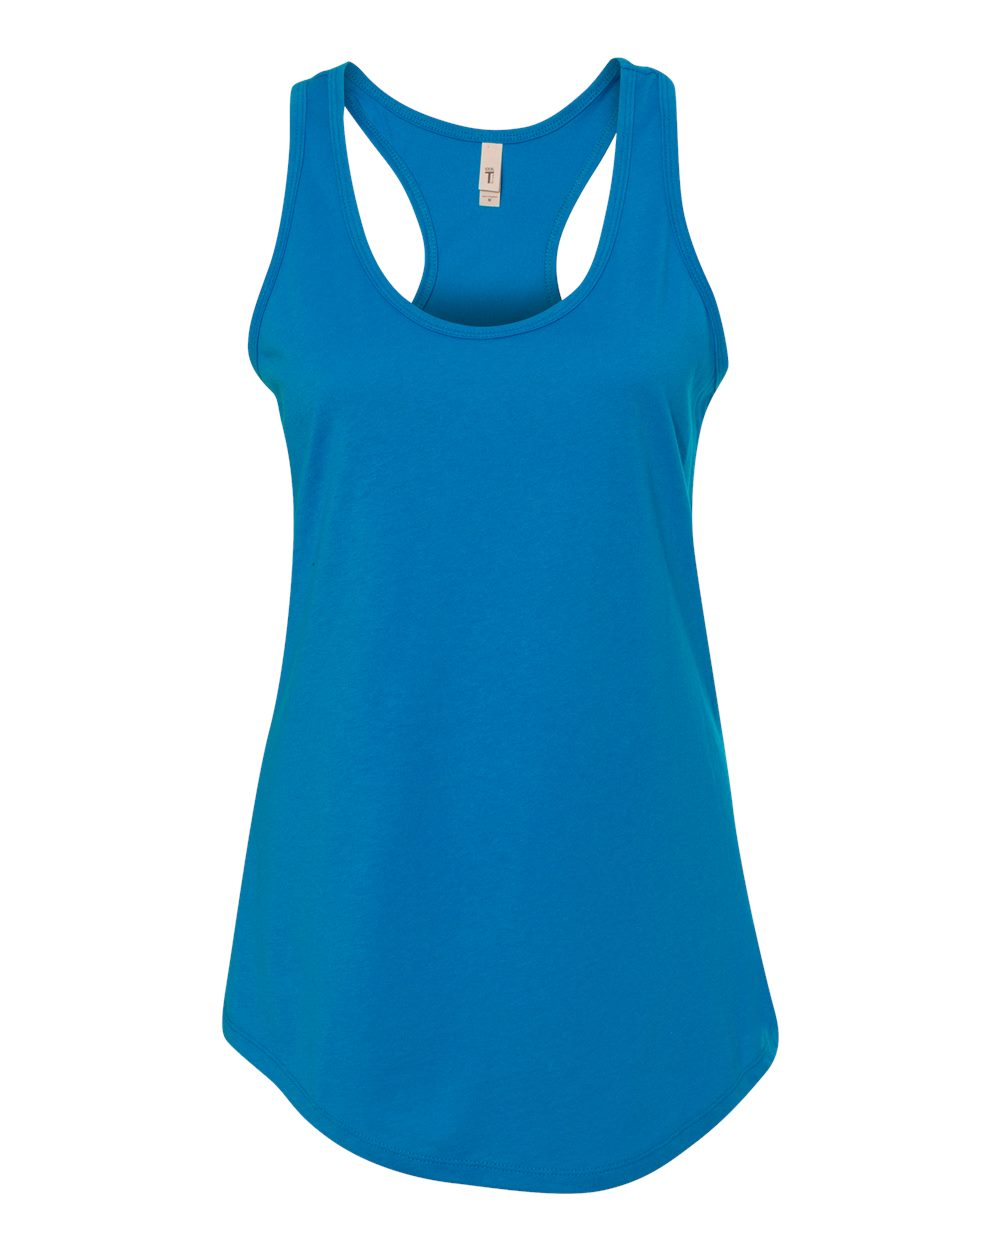 Next_Level_1533_Turquoise_Front_High.jpg